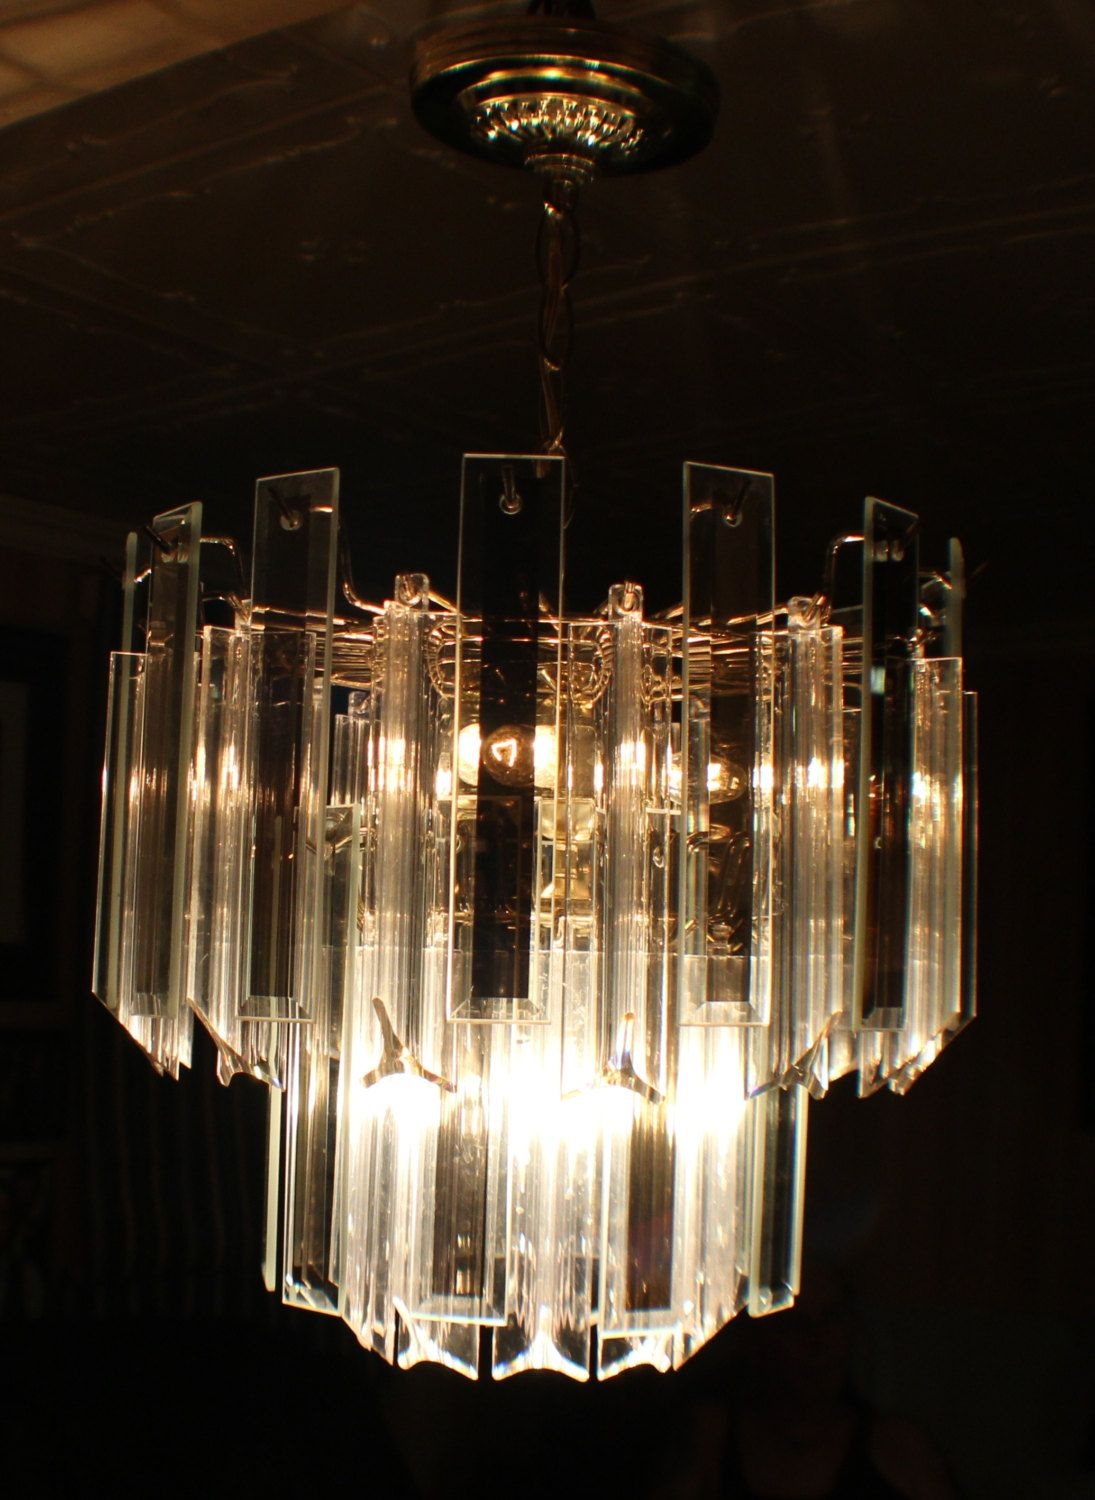 Stunning 48 Lucite And Smoked Beveled Glass 2 Tiered Chain Hanging Chandelier Brass Finish Hanging Chandelier Brass Chandelier Chandelier